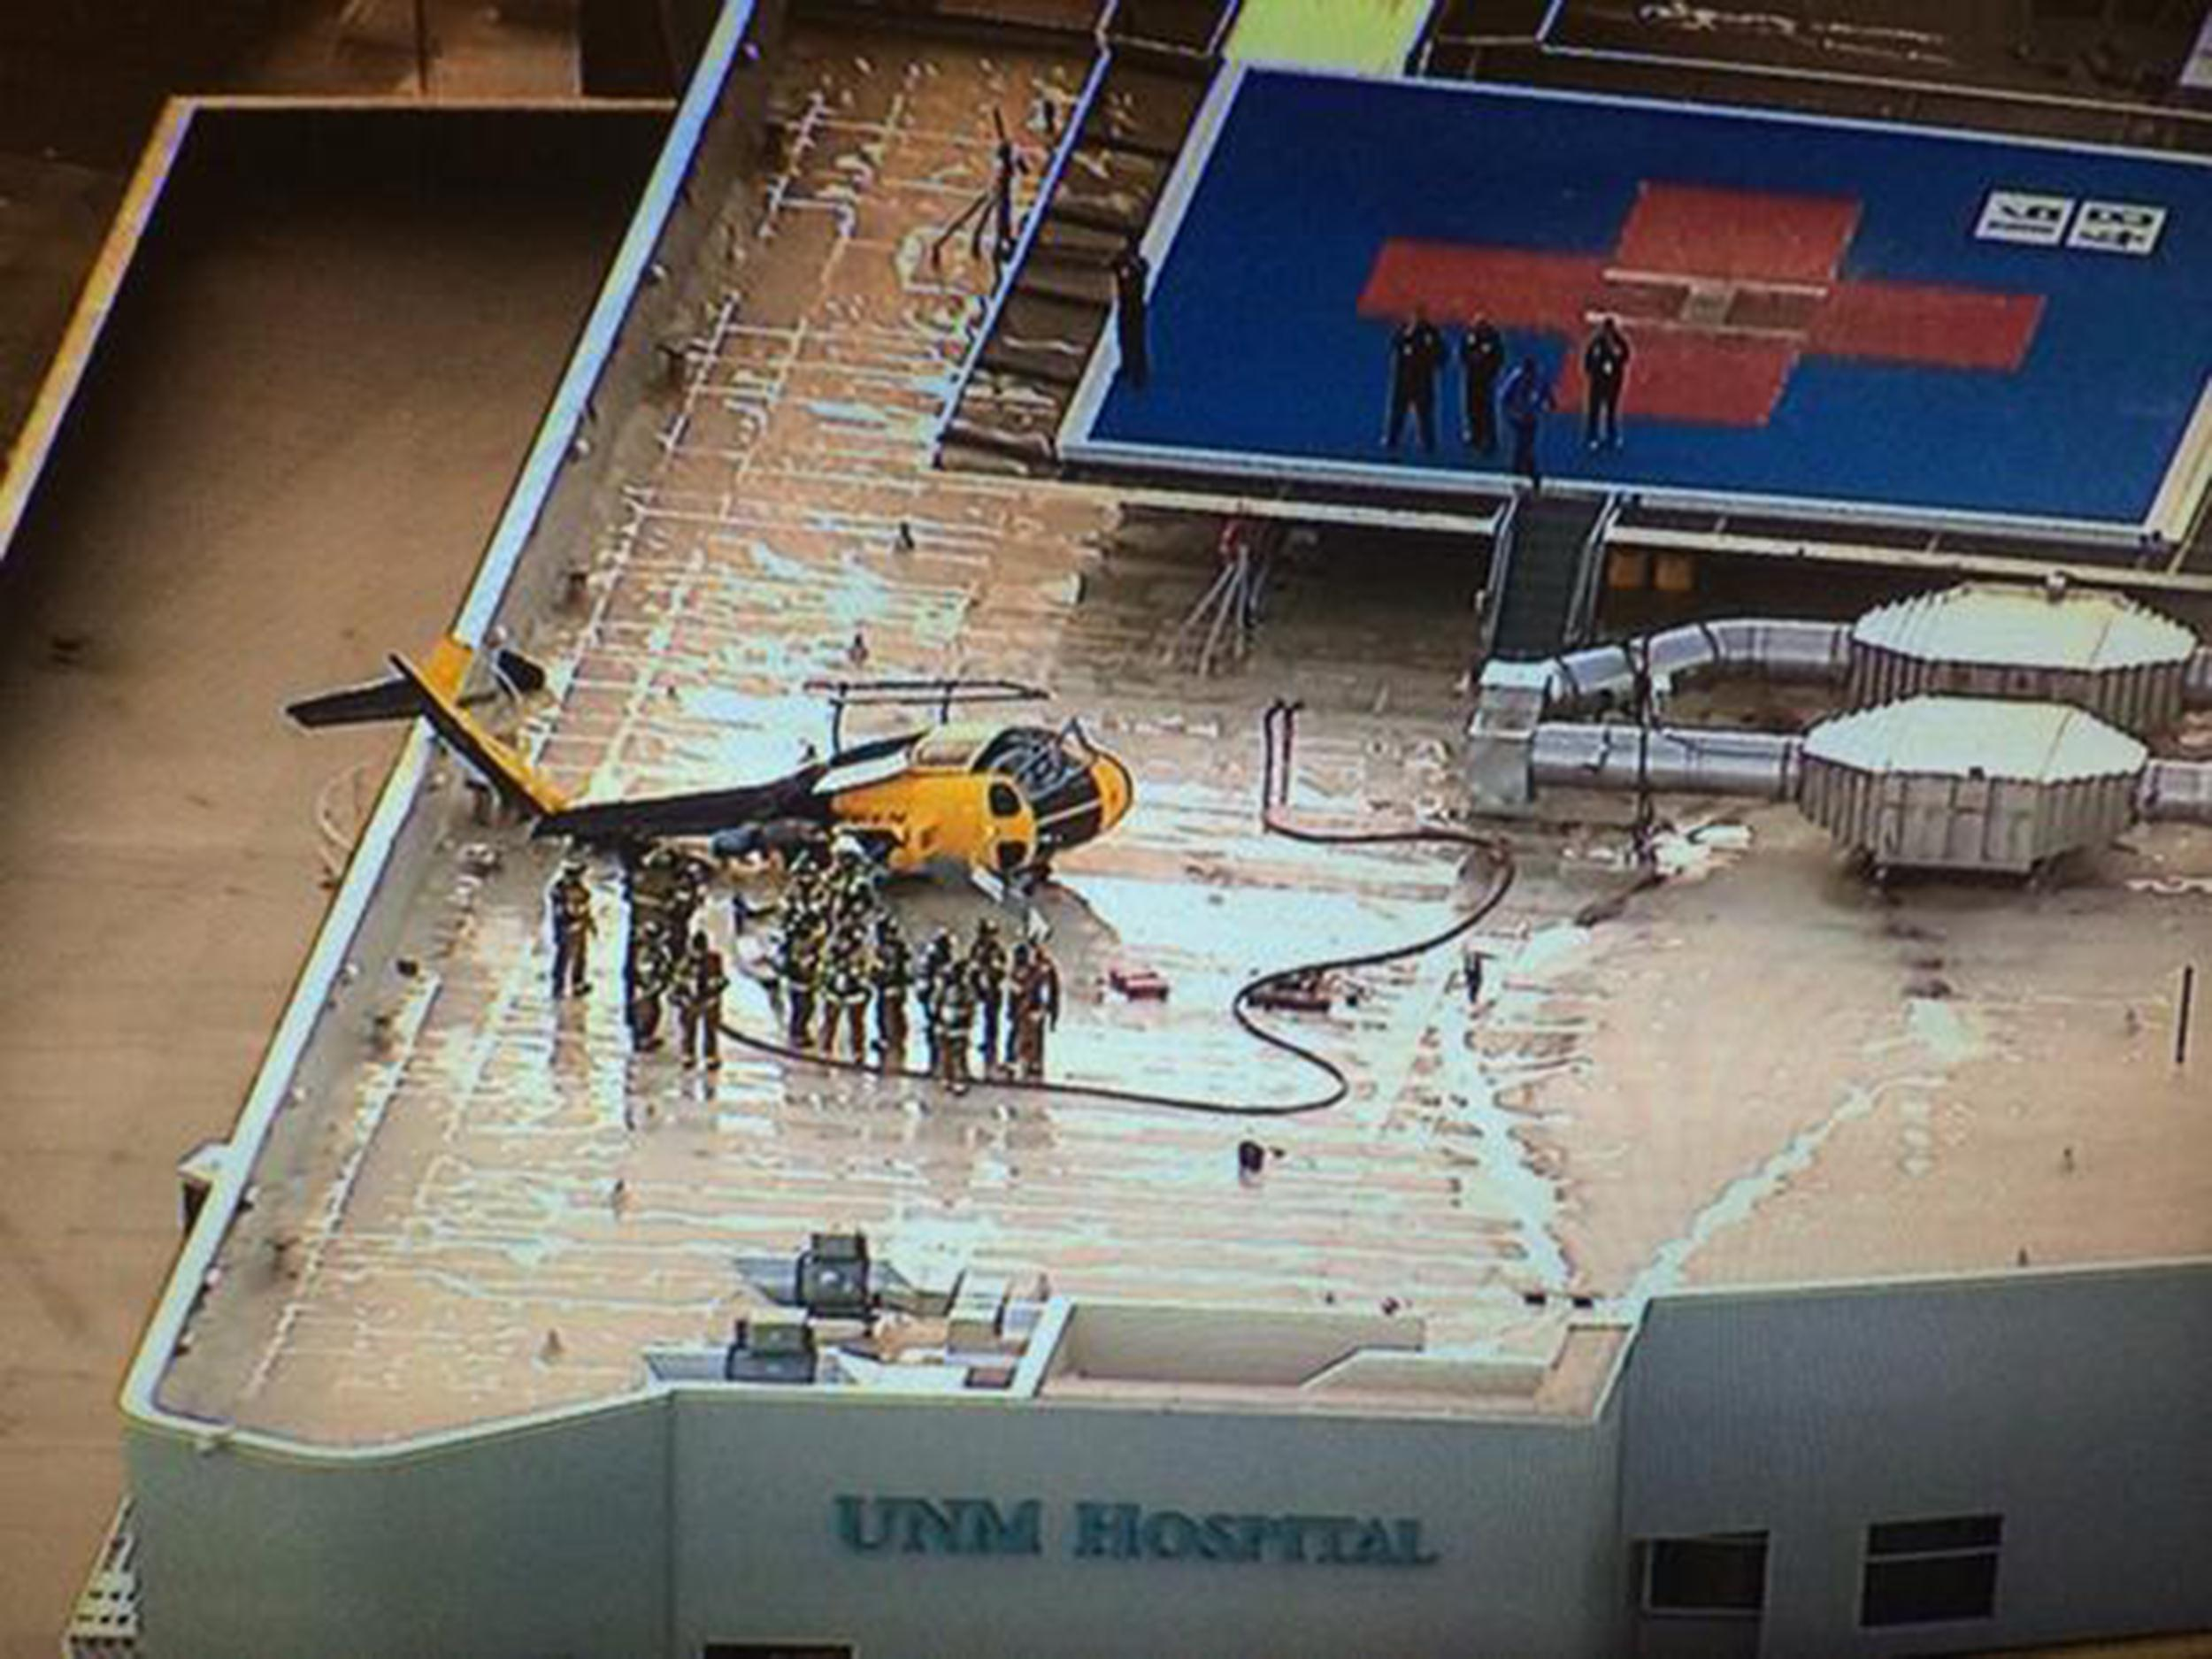 Image: A helicopter crashed on the roof of University of New Mexico Hospital on Wednesday.